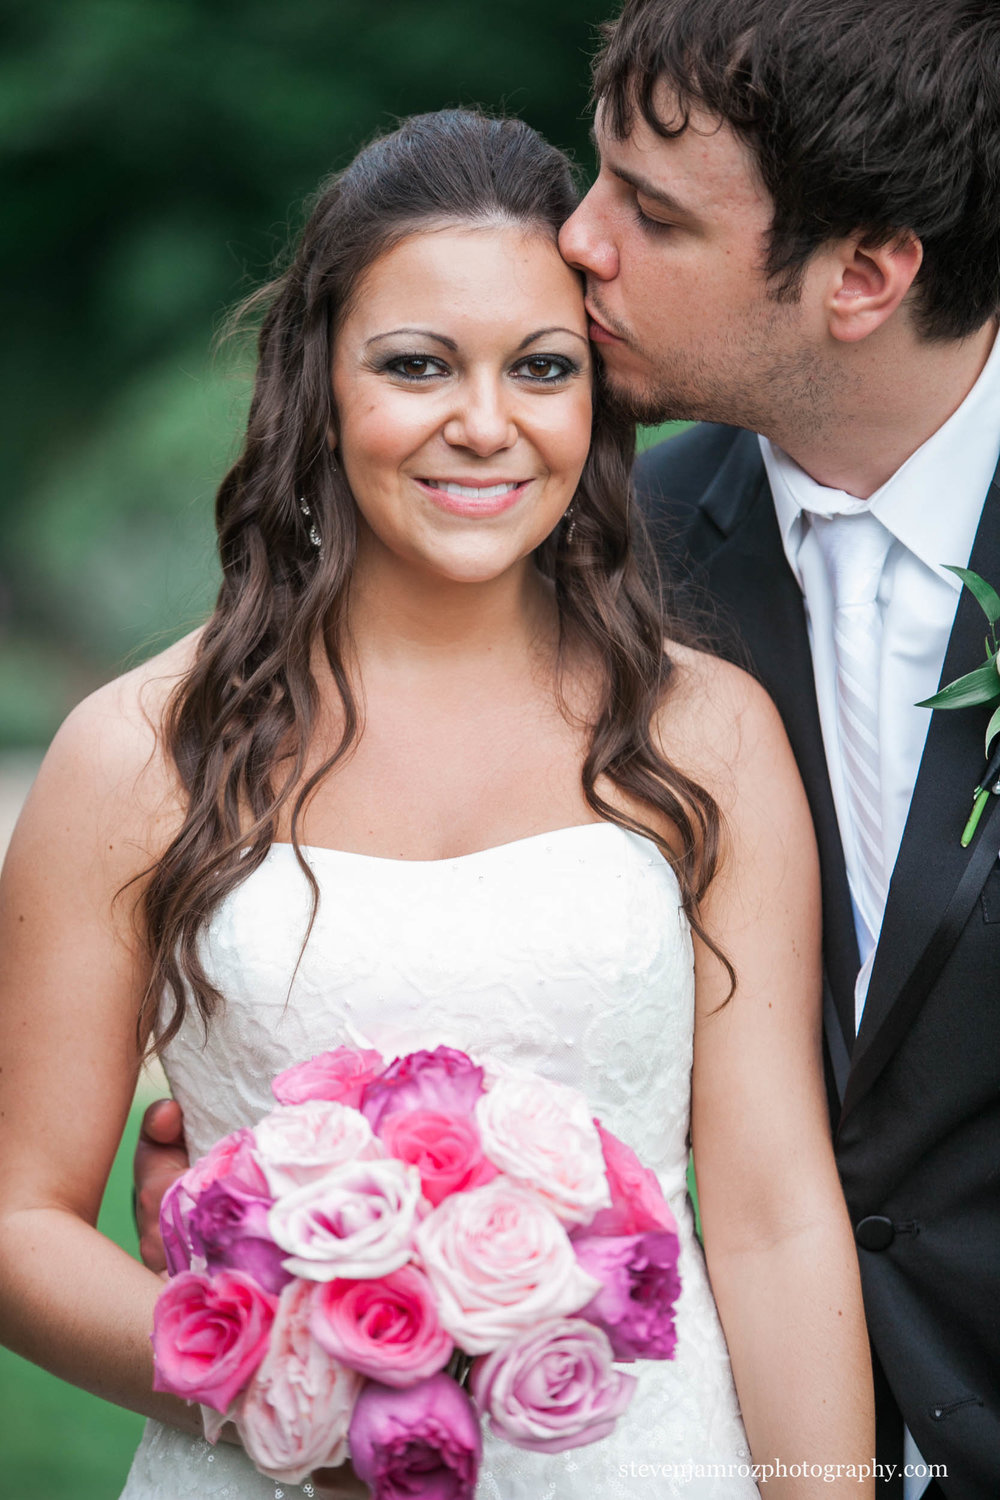 kiss-on-cheak-wedding-steven-jamroz-photography-0011.jpg